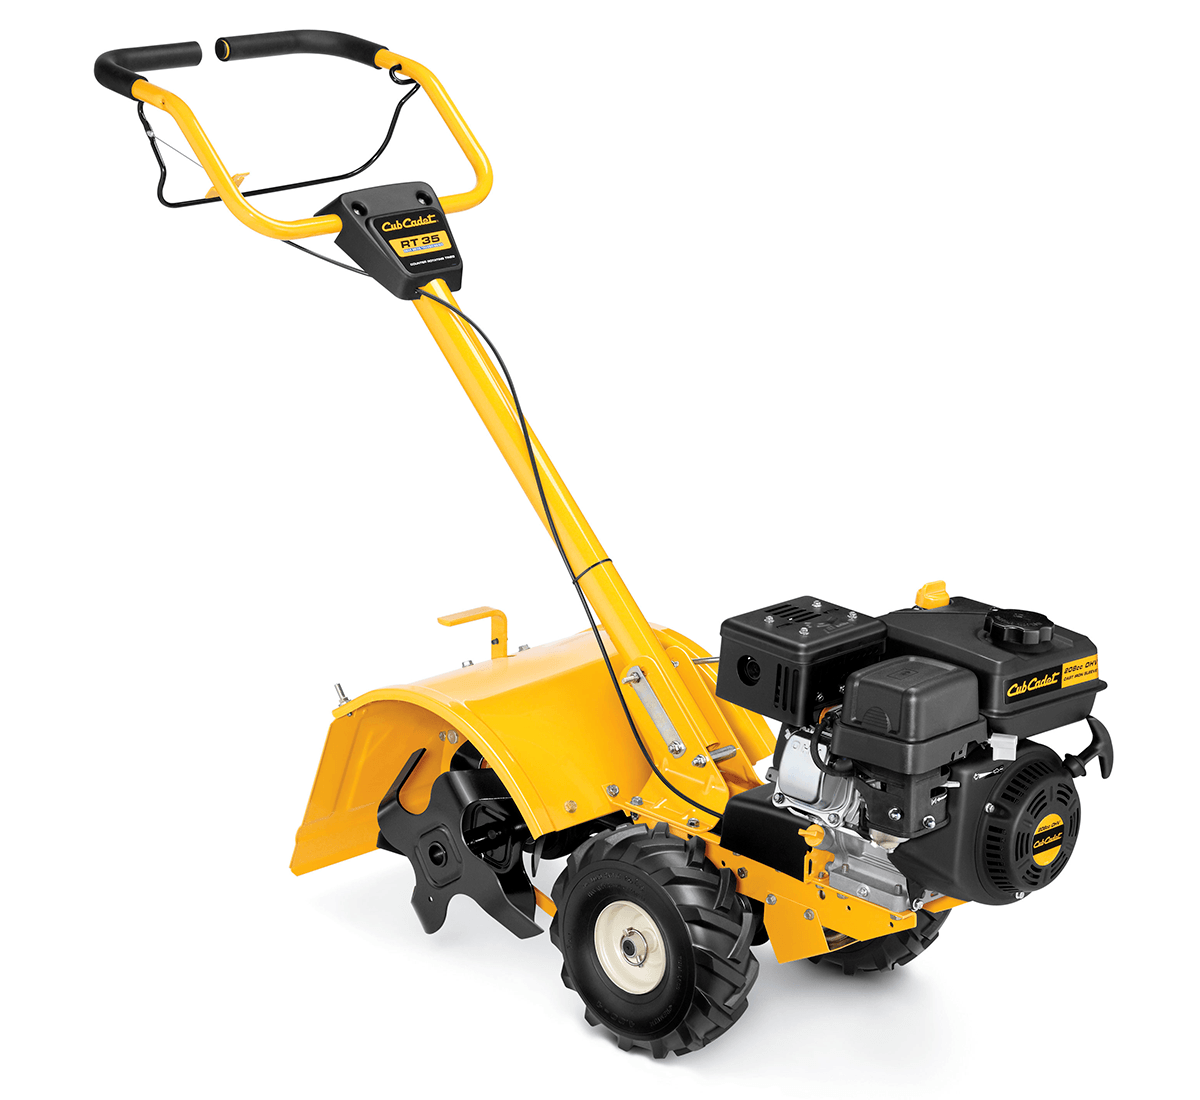 2019 Cub Cadet RT 35 Garden Tiller in Hillman, Michigan